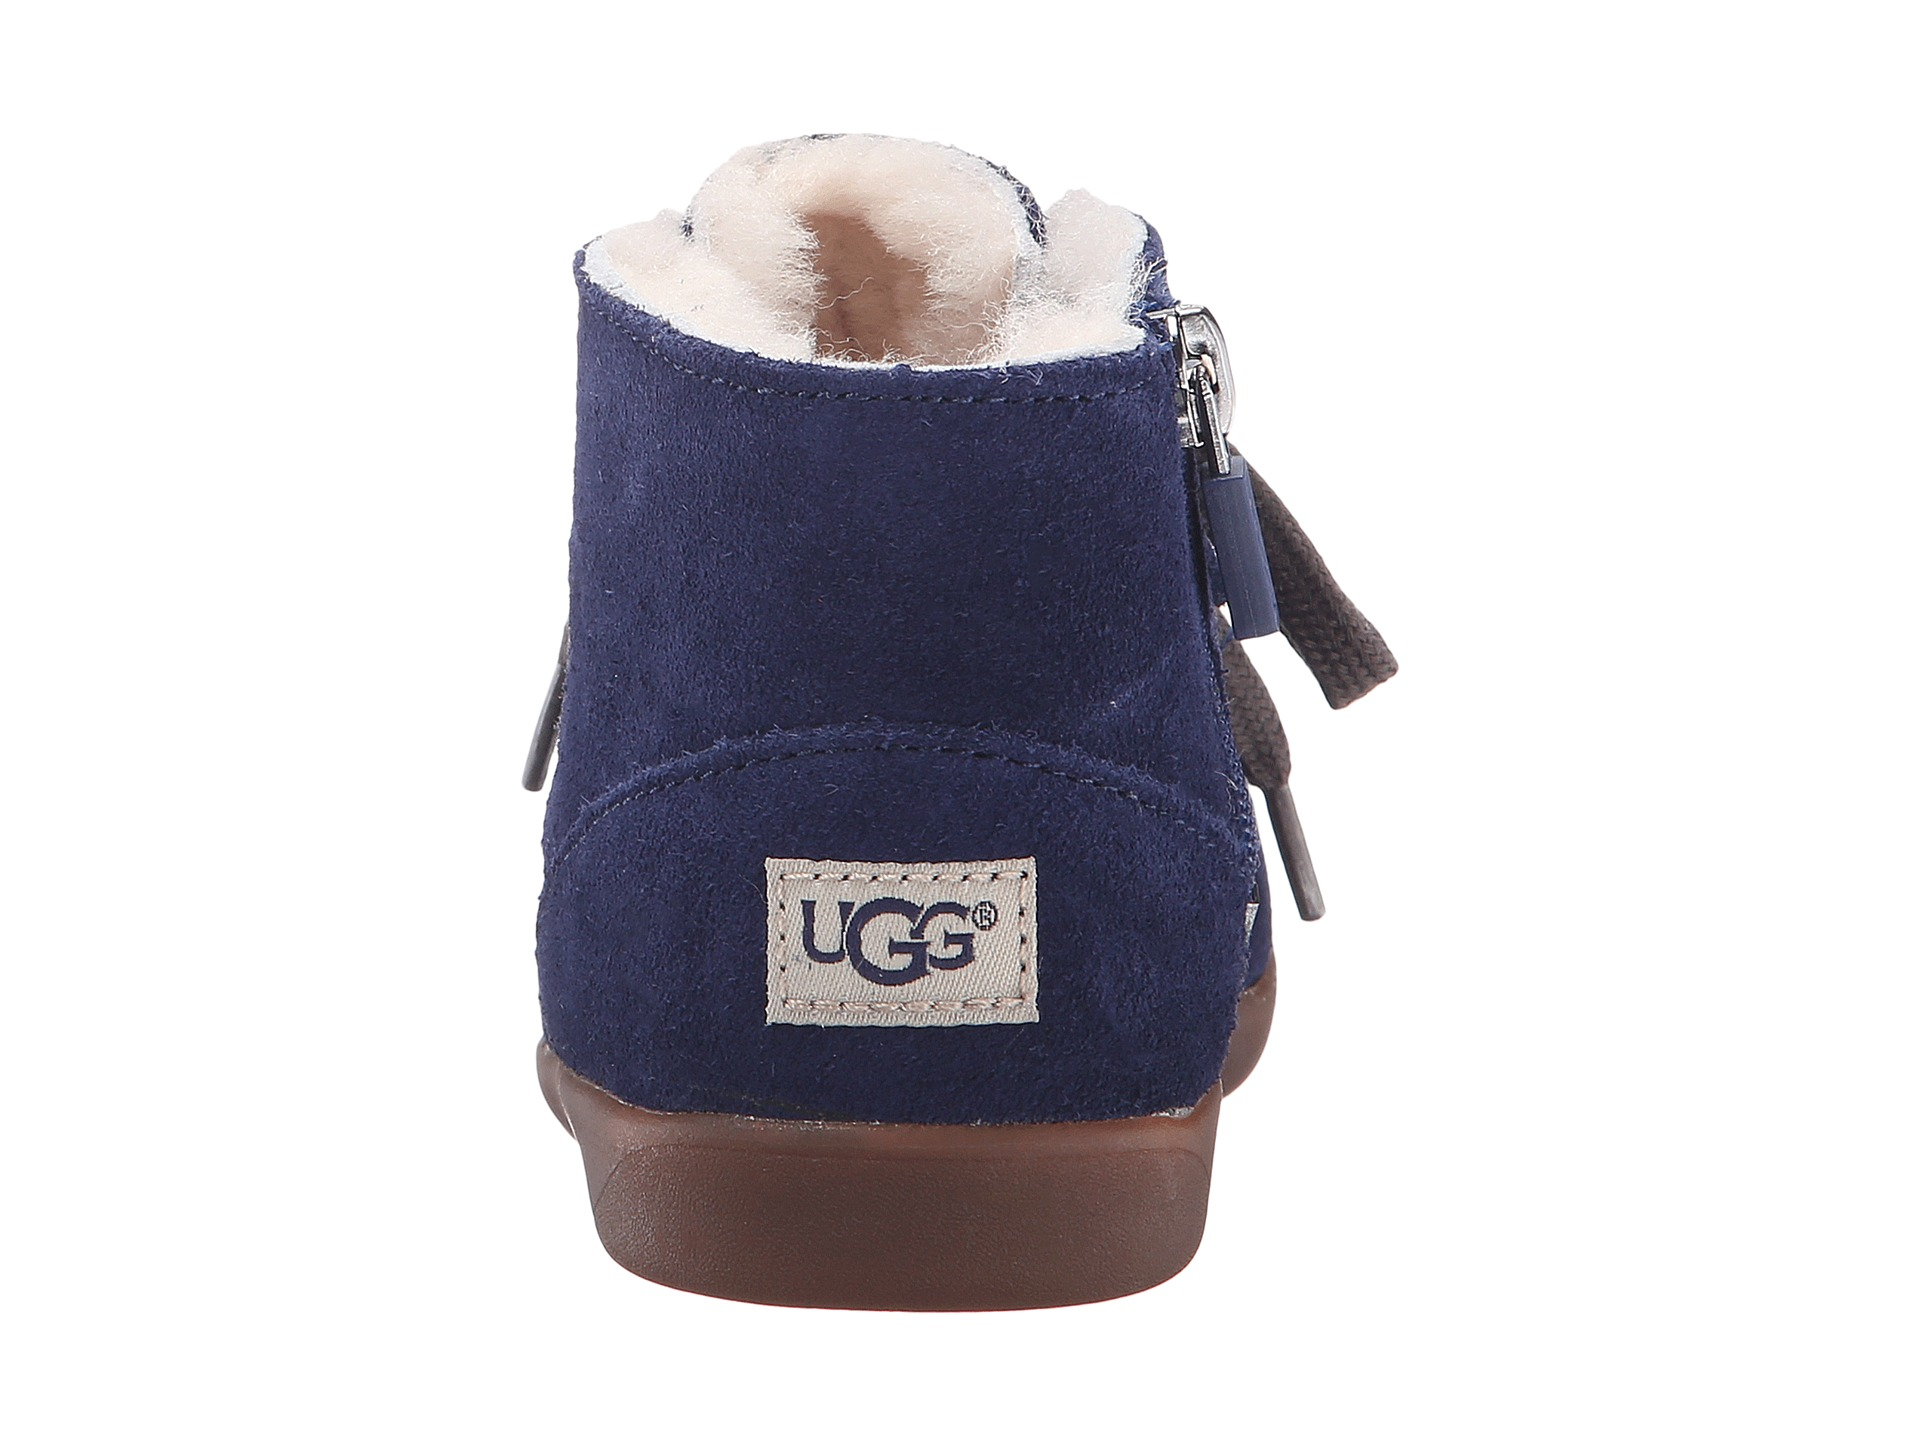 2209c956e2d Us Shoe Size Conversion Ugg Boots - cheap watches mgc-gas.com